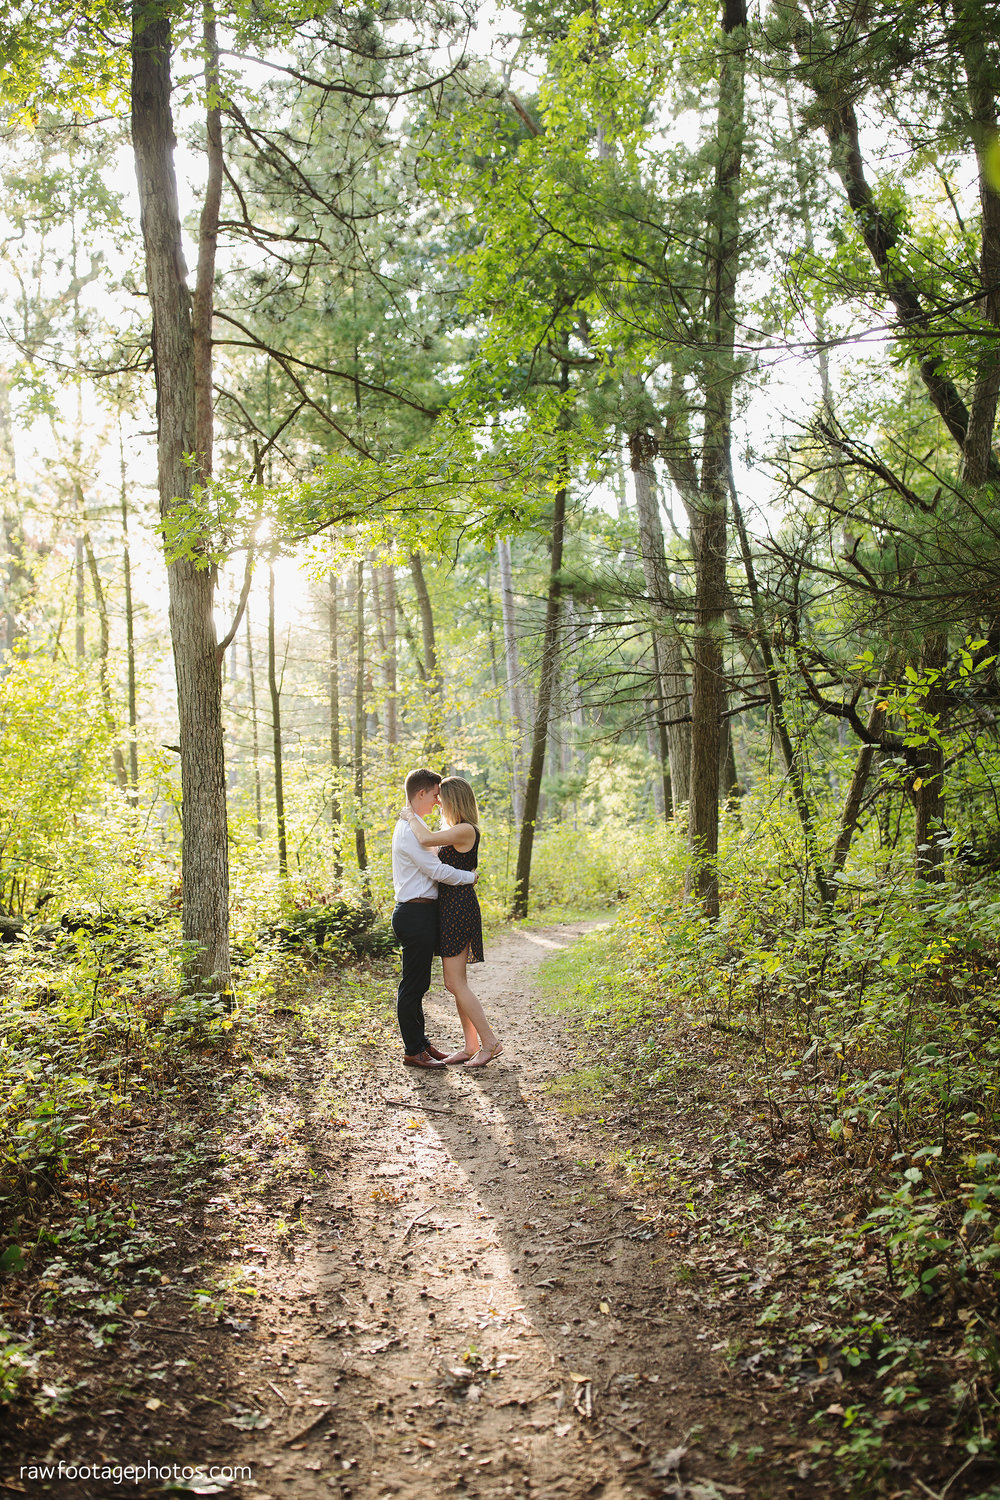 london_ontario_wedding_photographer-engagement_session-best_of_2018-raw_footage_photography068 copy.jpg